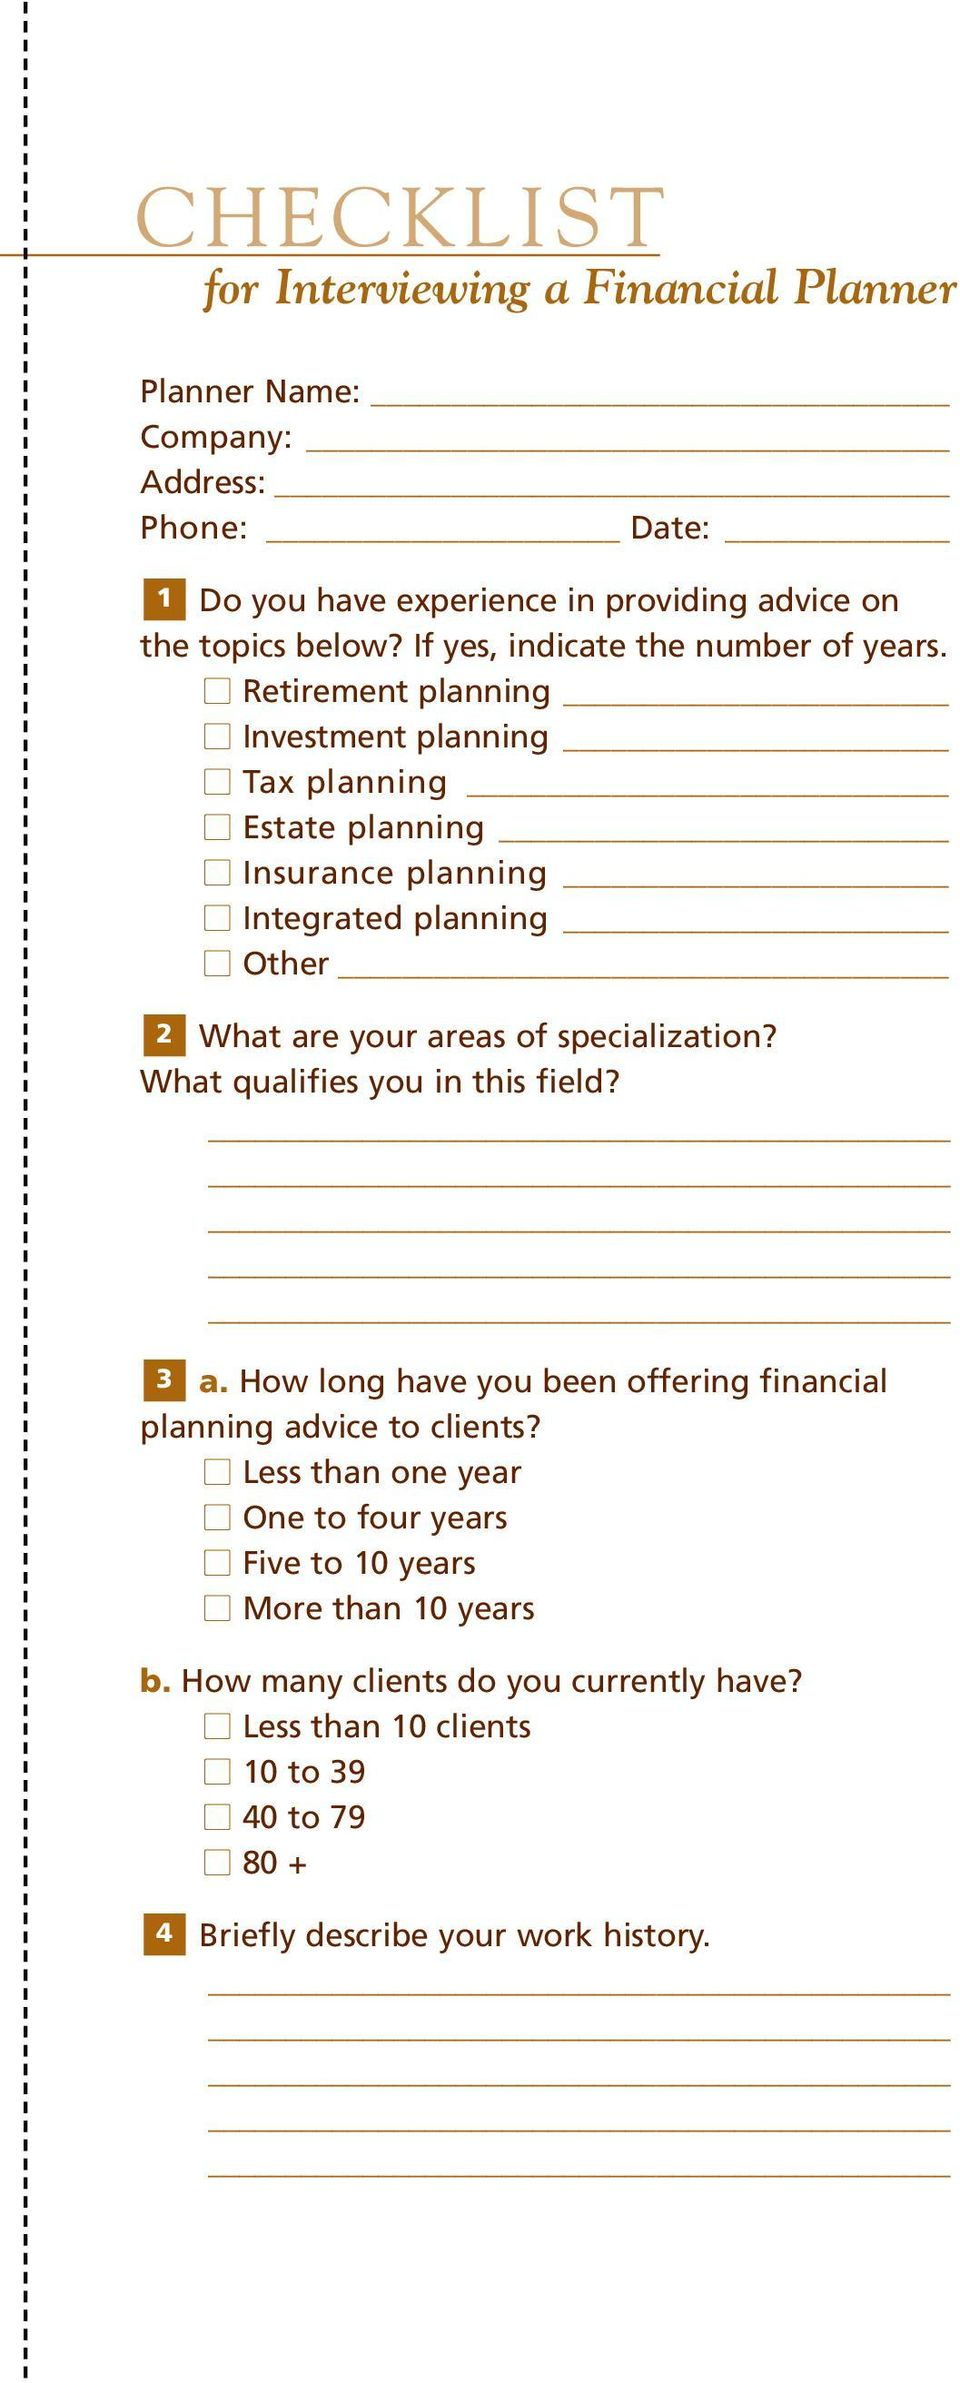 Retirement planning Investment planning Tax planning Estate planning Insurance planning Integrated planning Other 2 What are your areas of specialization?